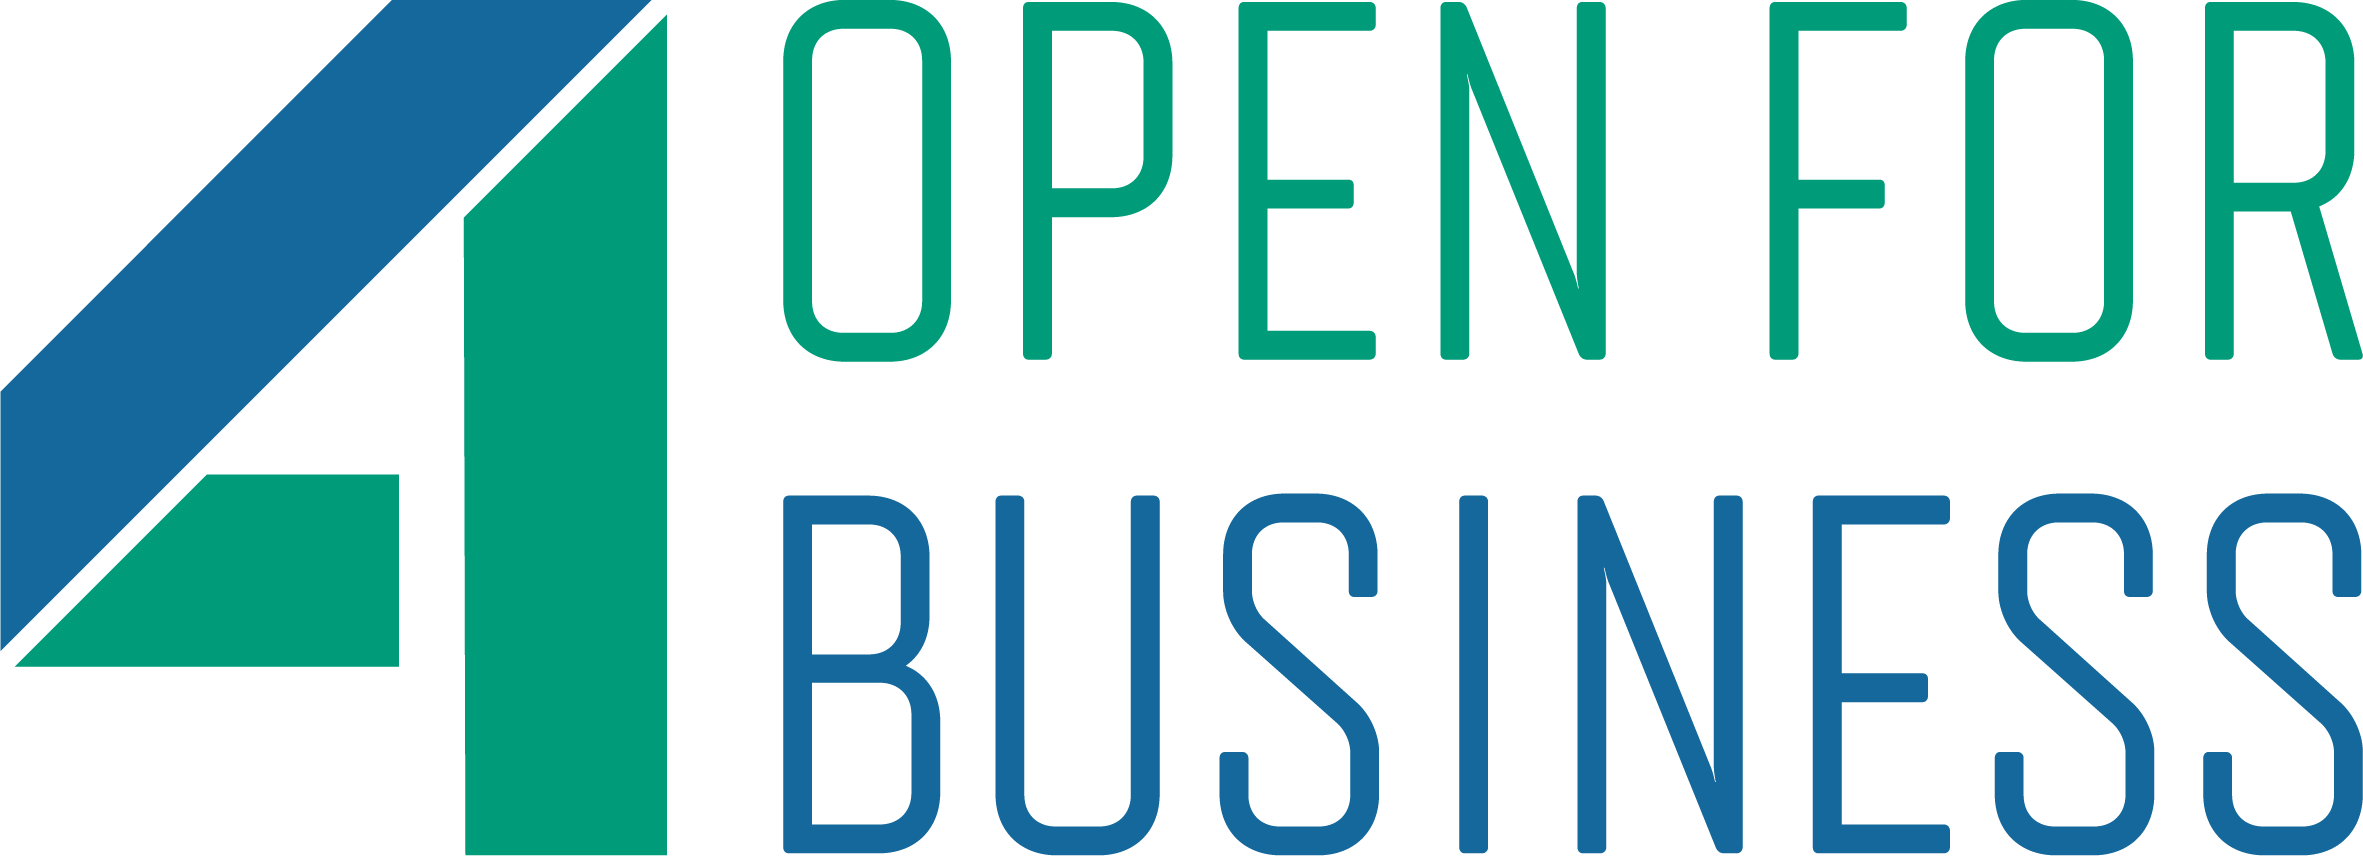 open4business GmbH logo